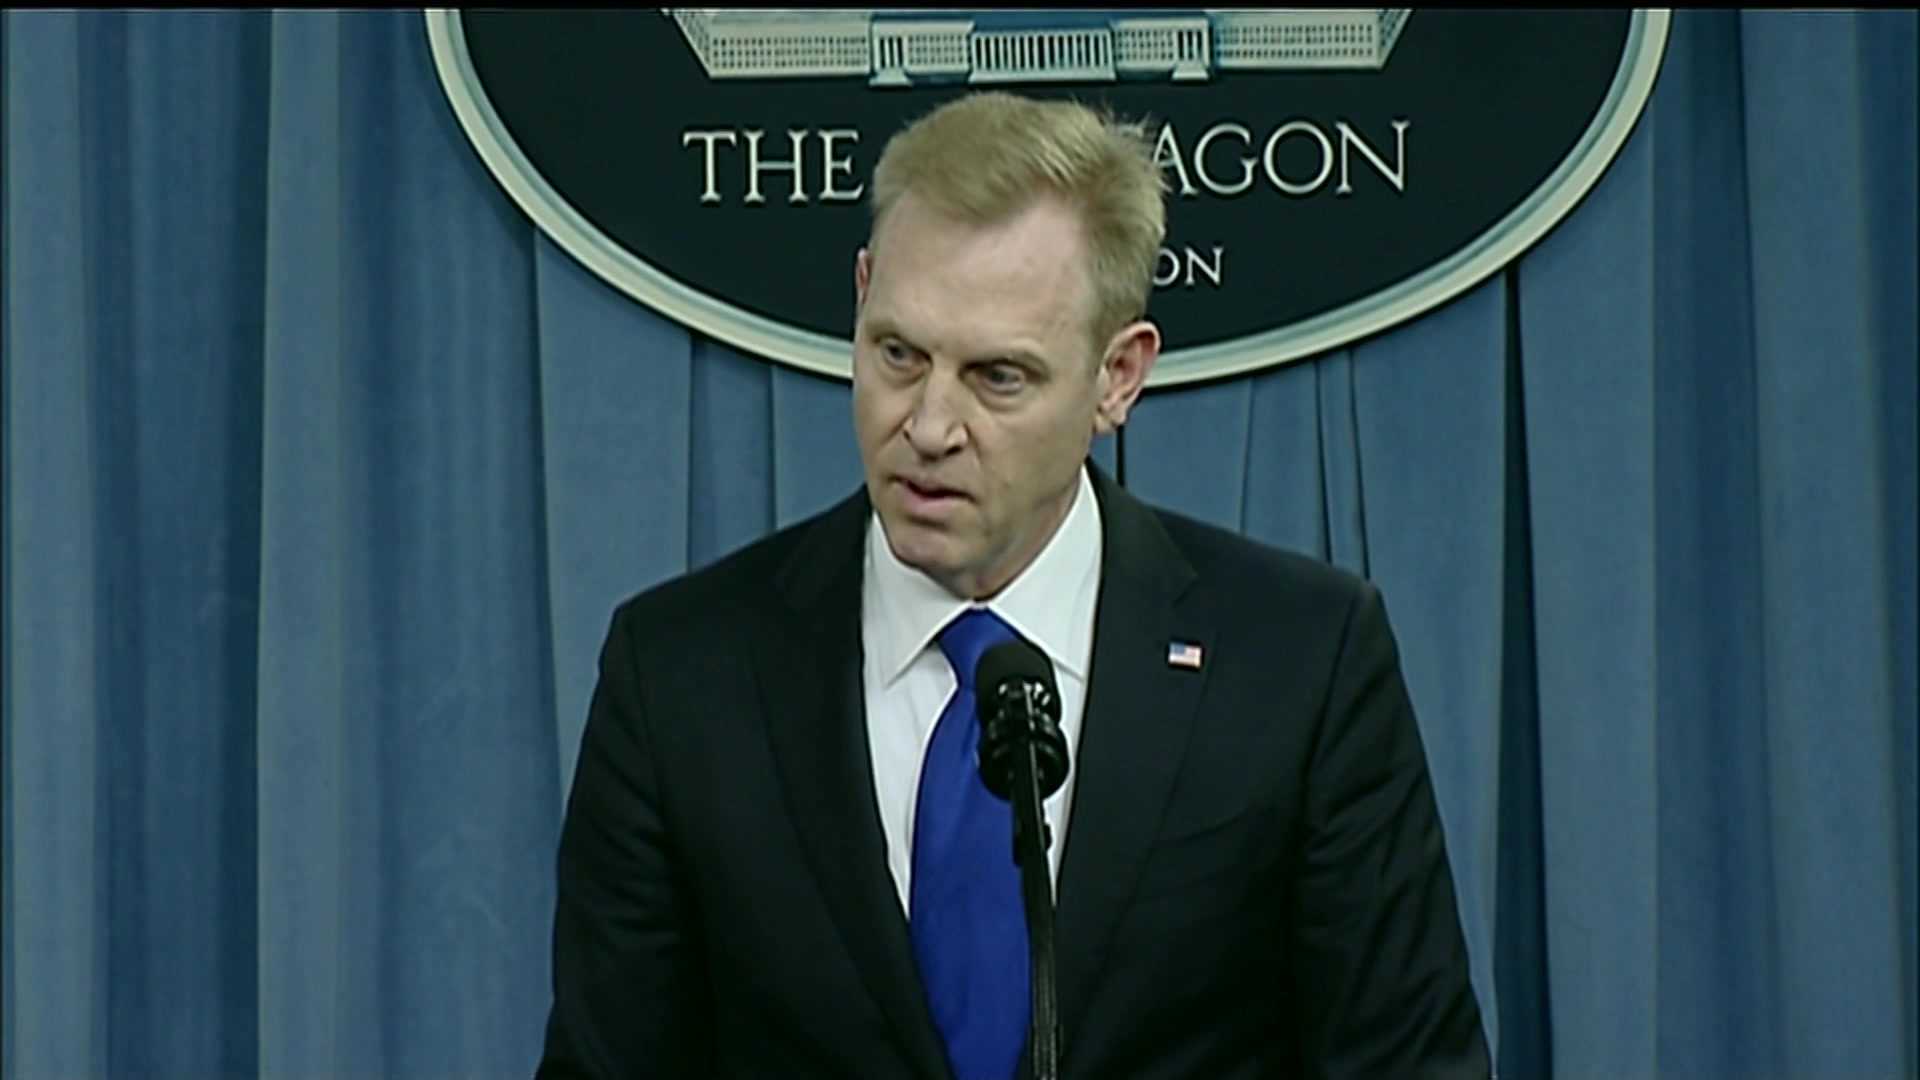 Deputy Defense Secretary Patrick M. Shanahan gives opening remarks at a press briefing on the nuclear posture review rollout at the Pentagon, Feb. 2, 2018.